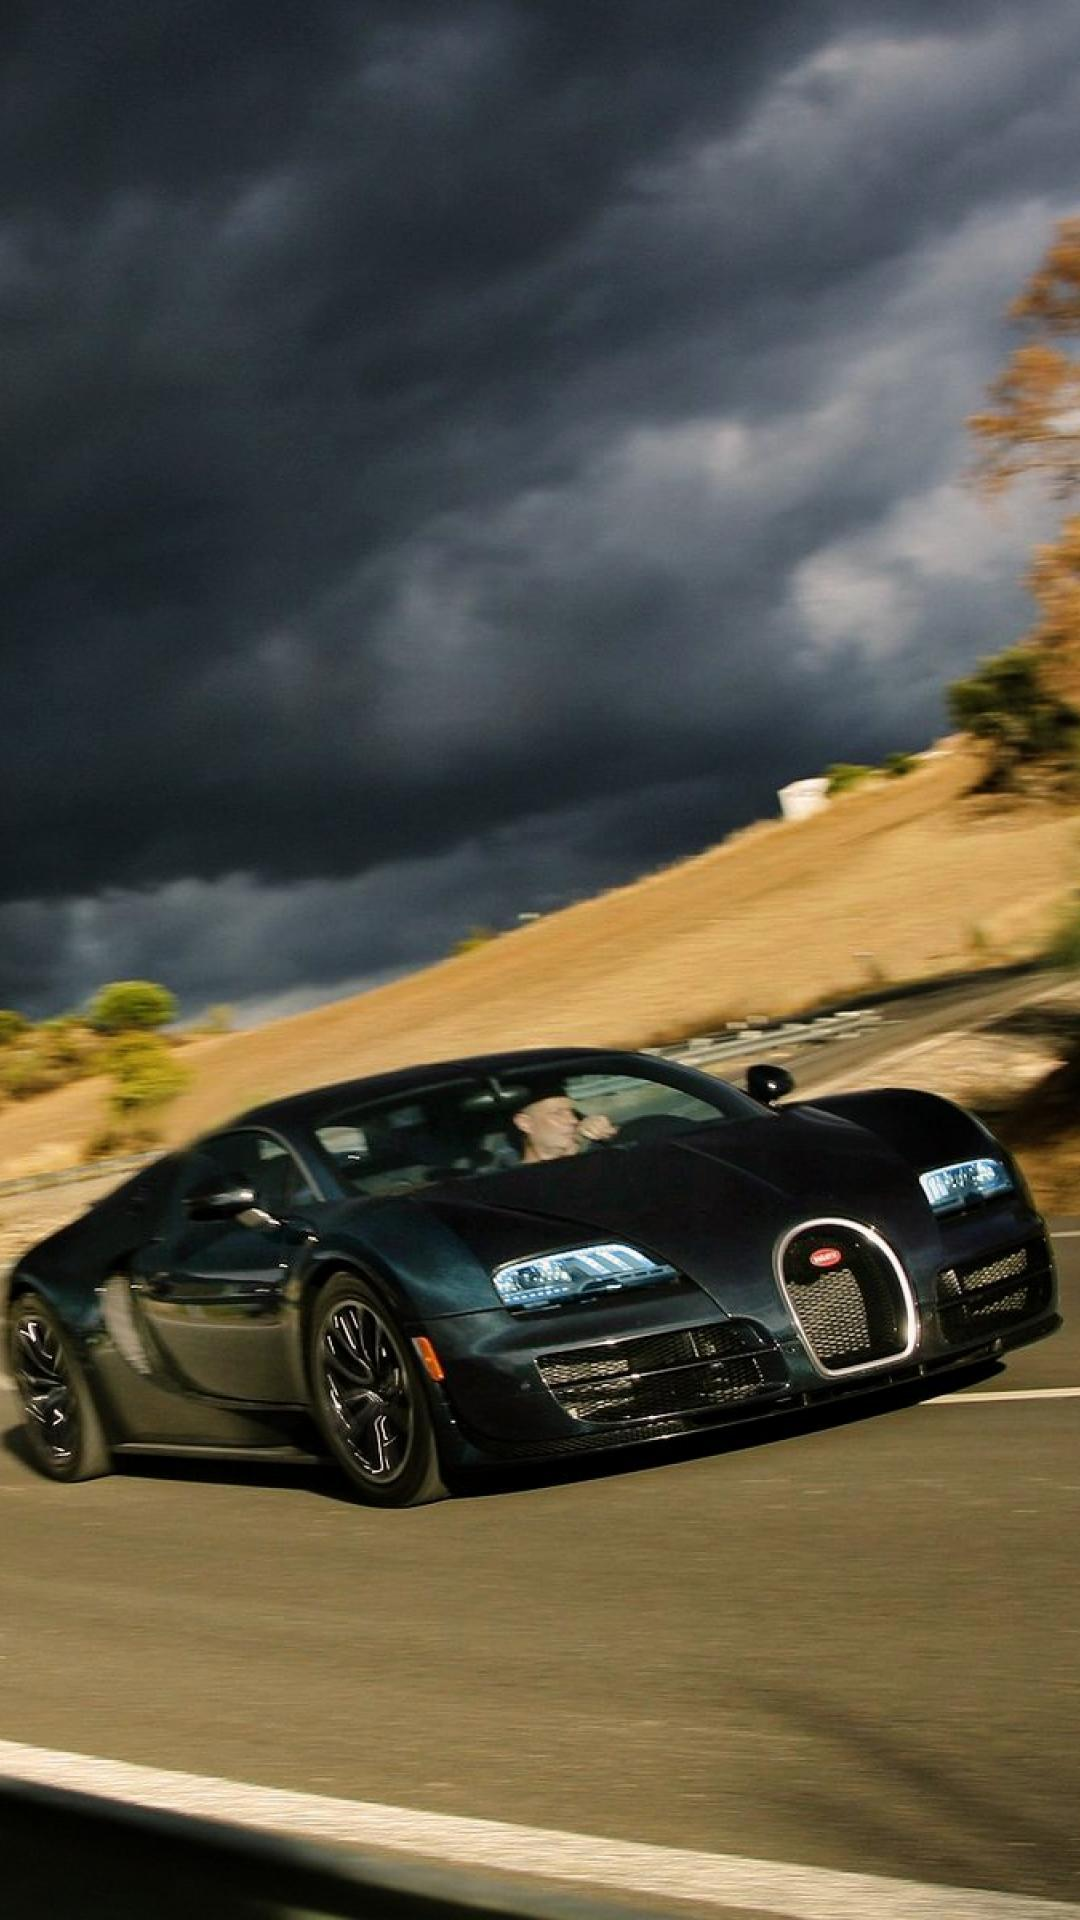 Car Wallpaper Car Wallpapers For Android 1080x1920 Bugatti